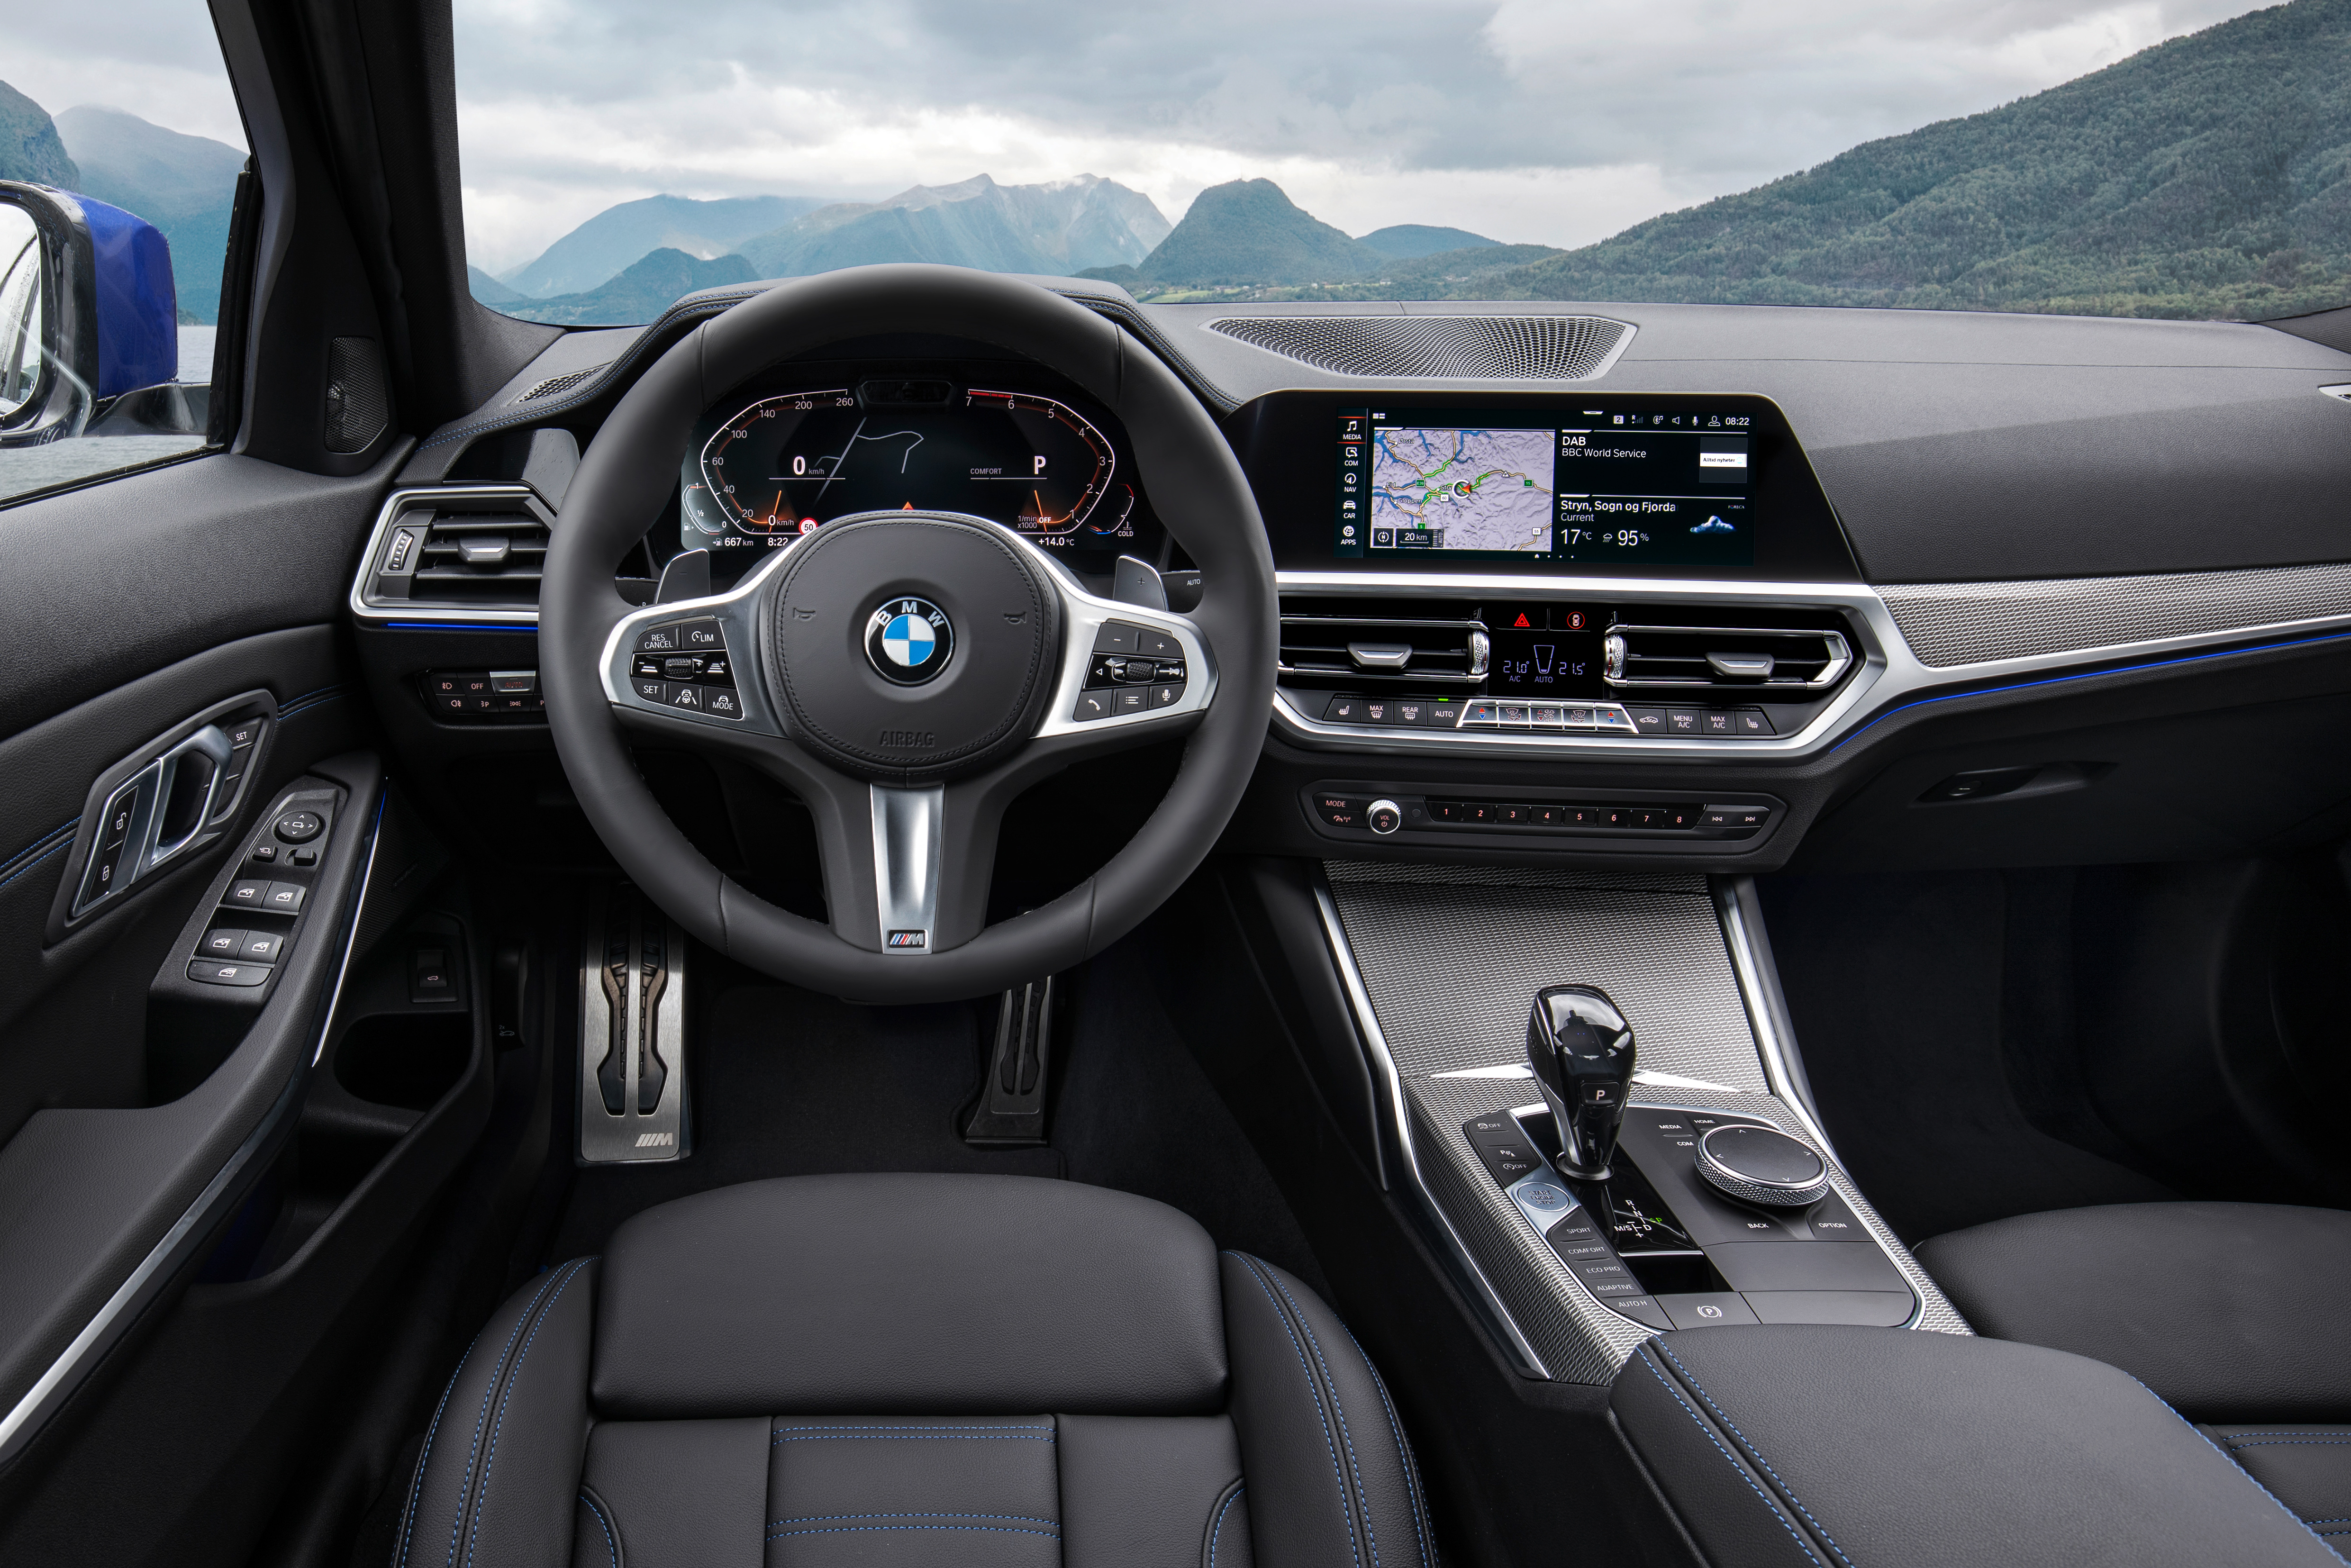 2019 BMW 3 Series interior